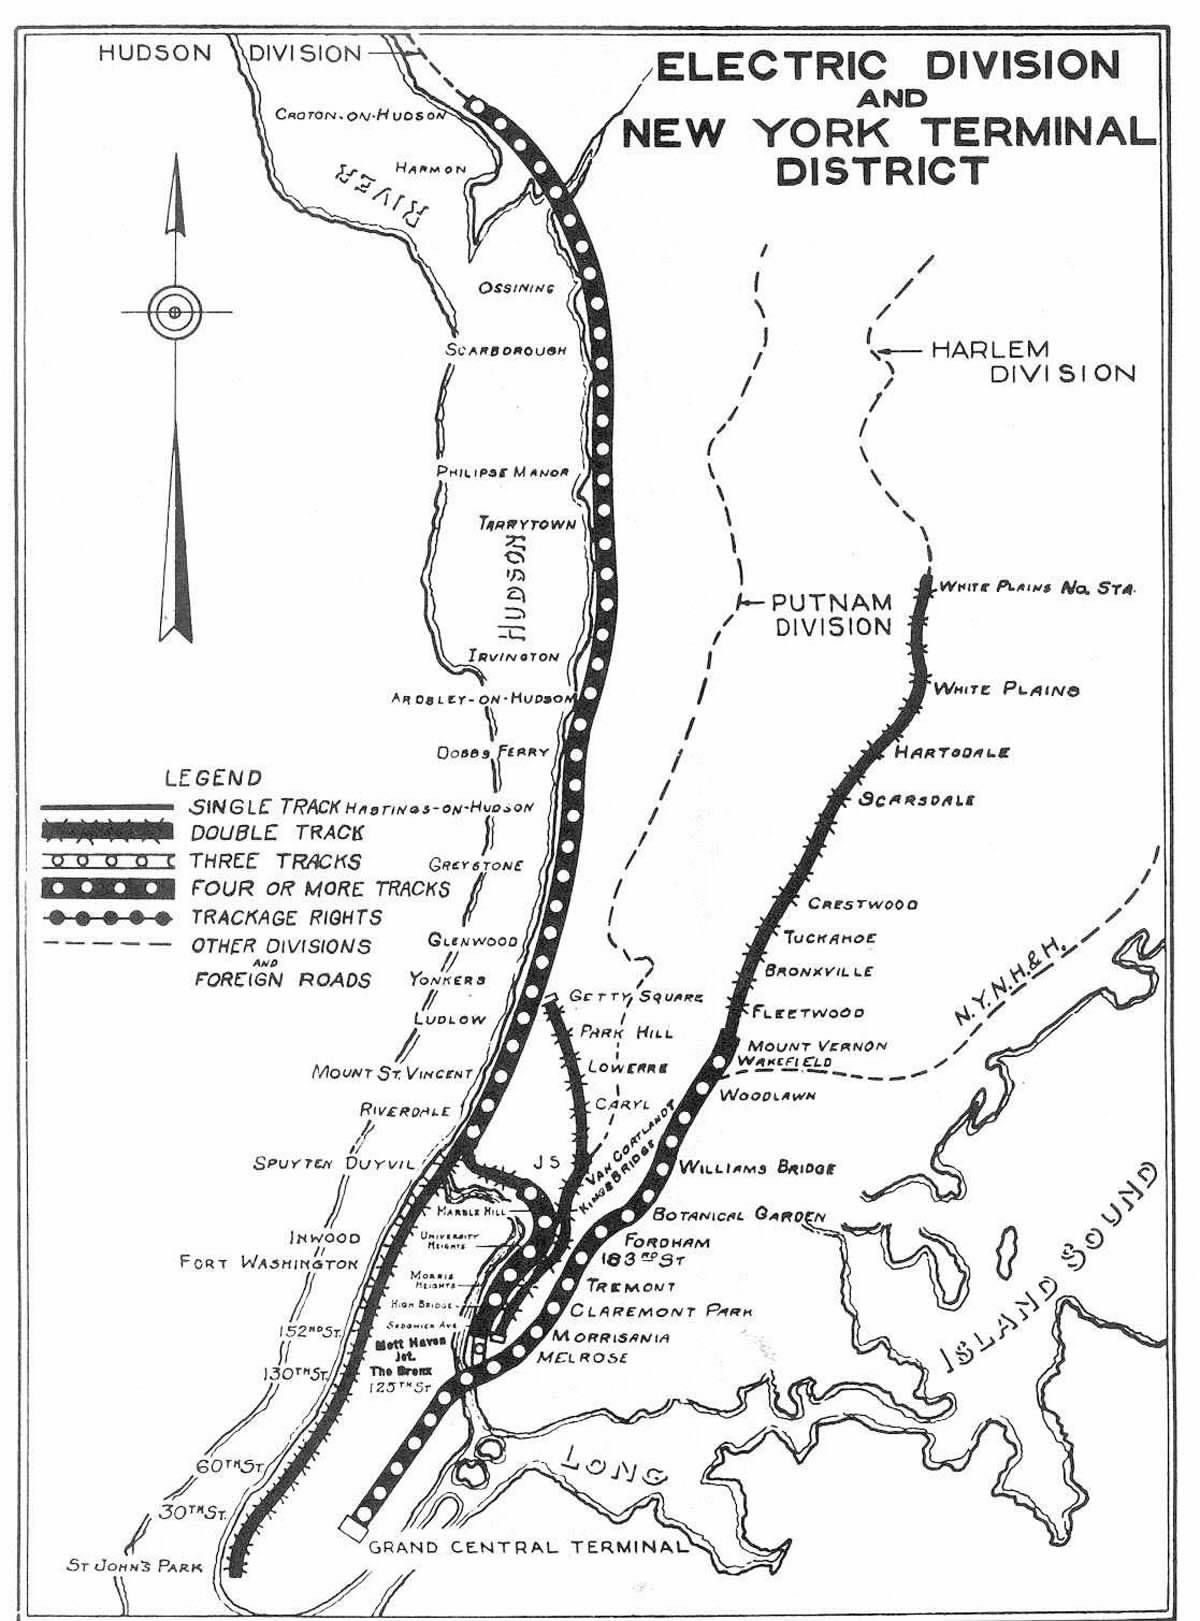 Map Of The Electric Division And New York Terminal